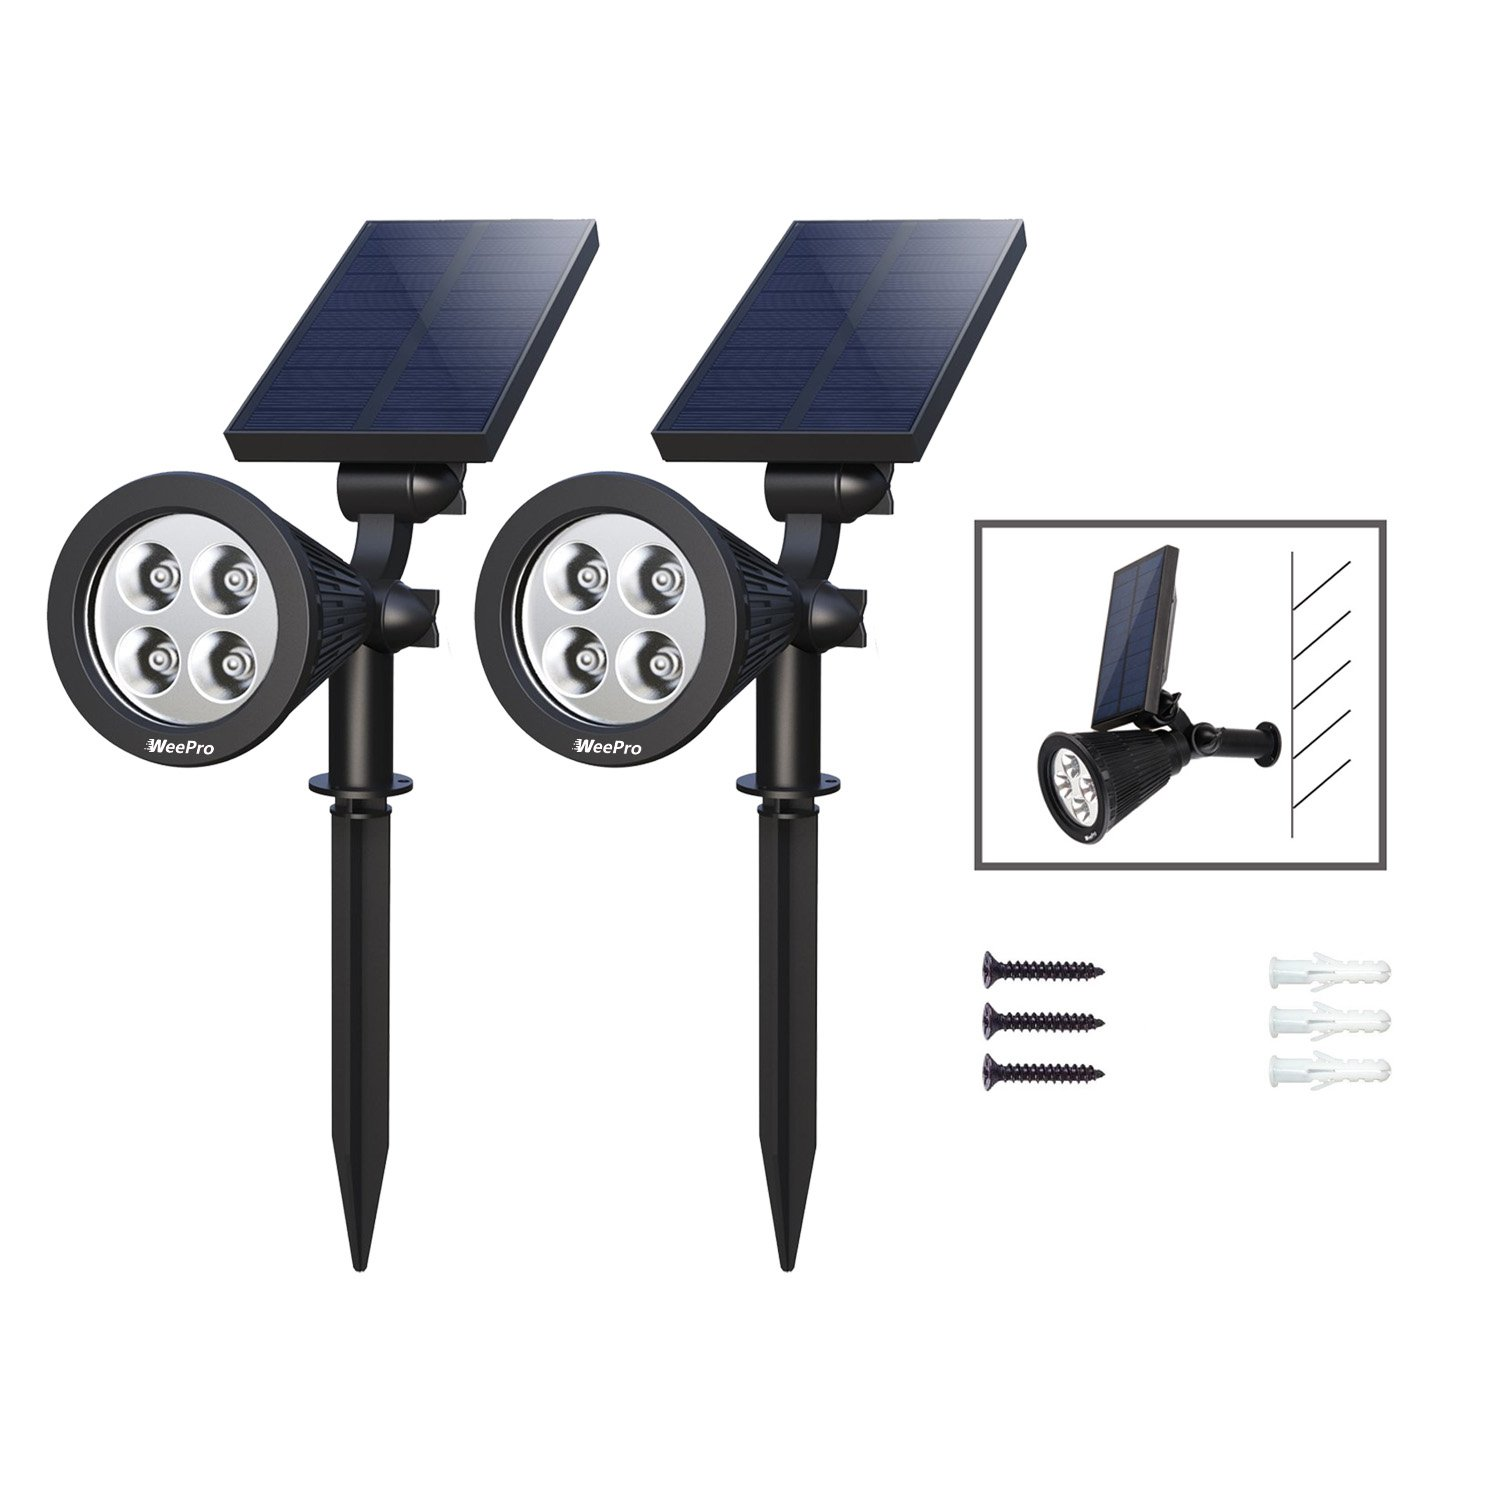 WeePro Led Landscape Spotlight Outdoor Garden Solar Light, Waterproof Sun Energy Rechargeable Lighting, Auto On / Off Wall Light for Yard, Path, Driveway, Flag, Hurricane Outage Emergency Use, 2 Pack